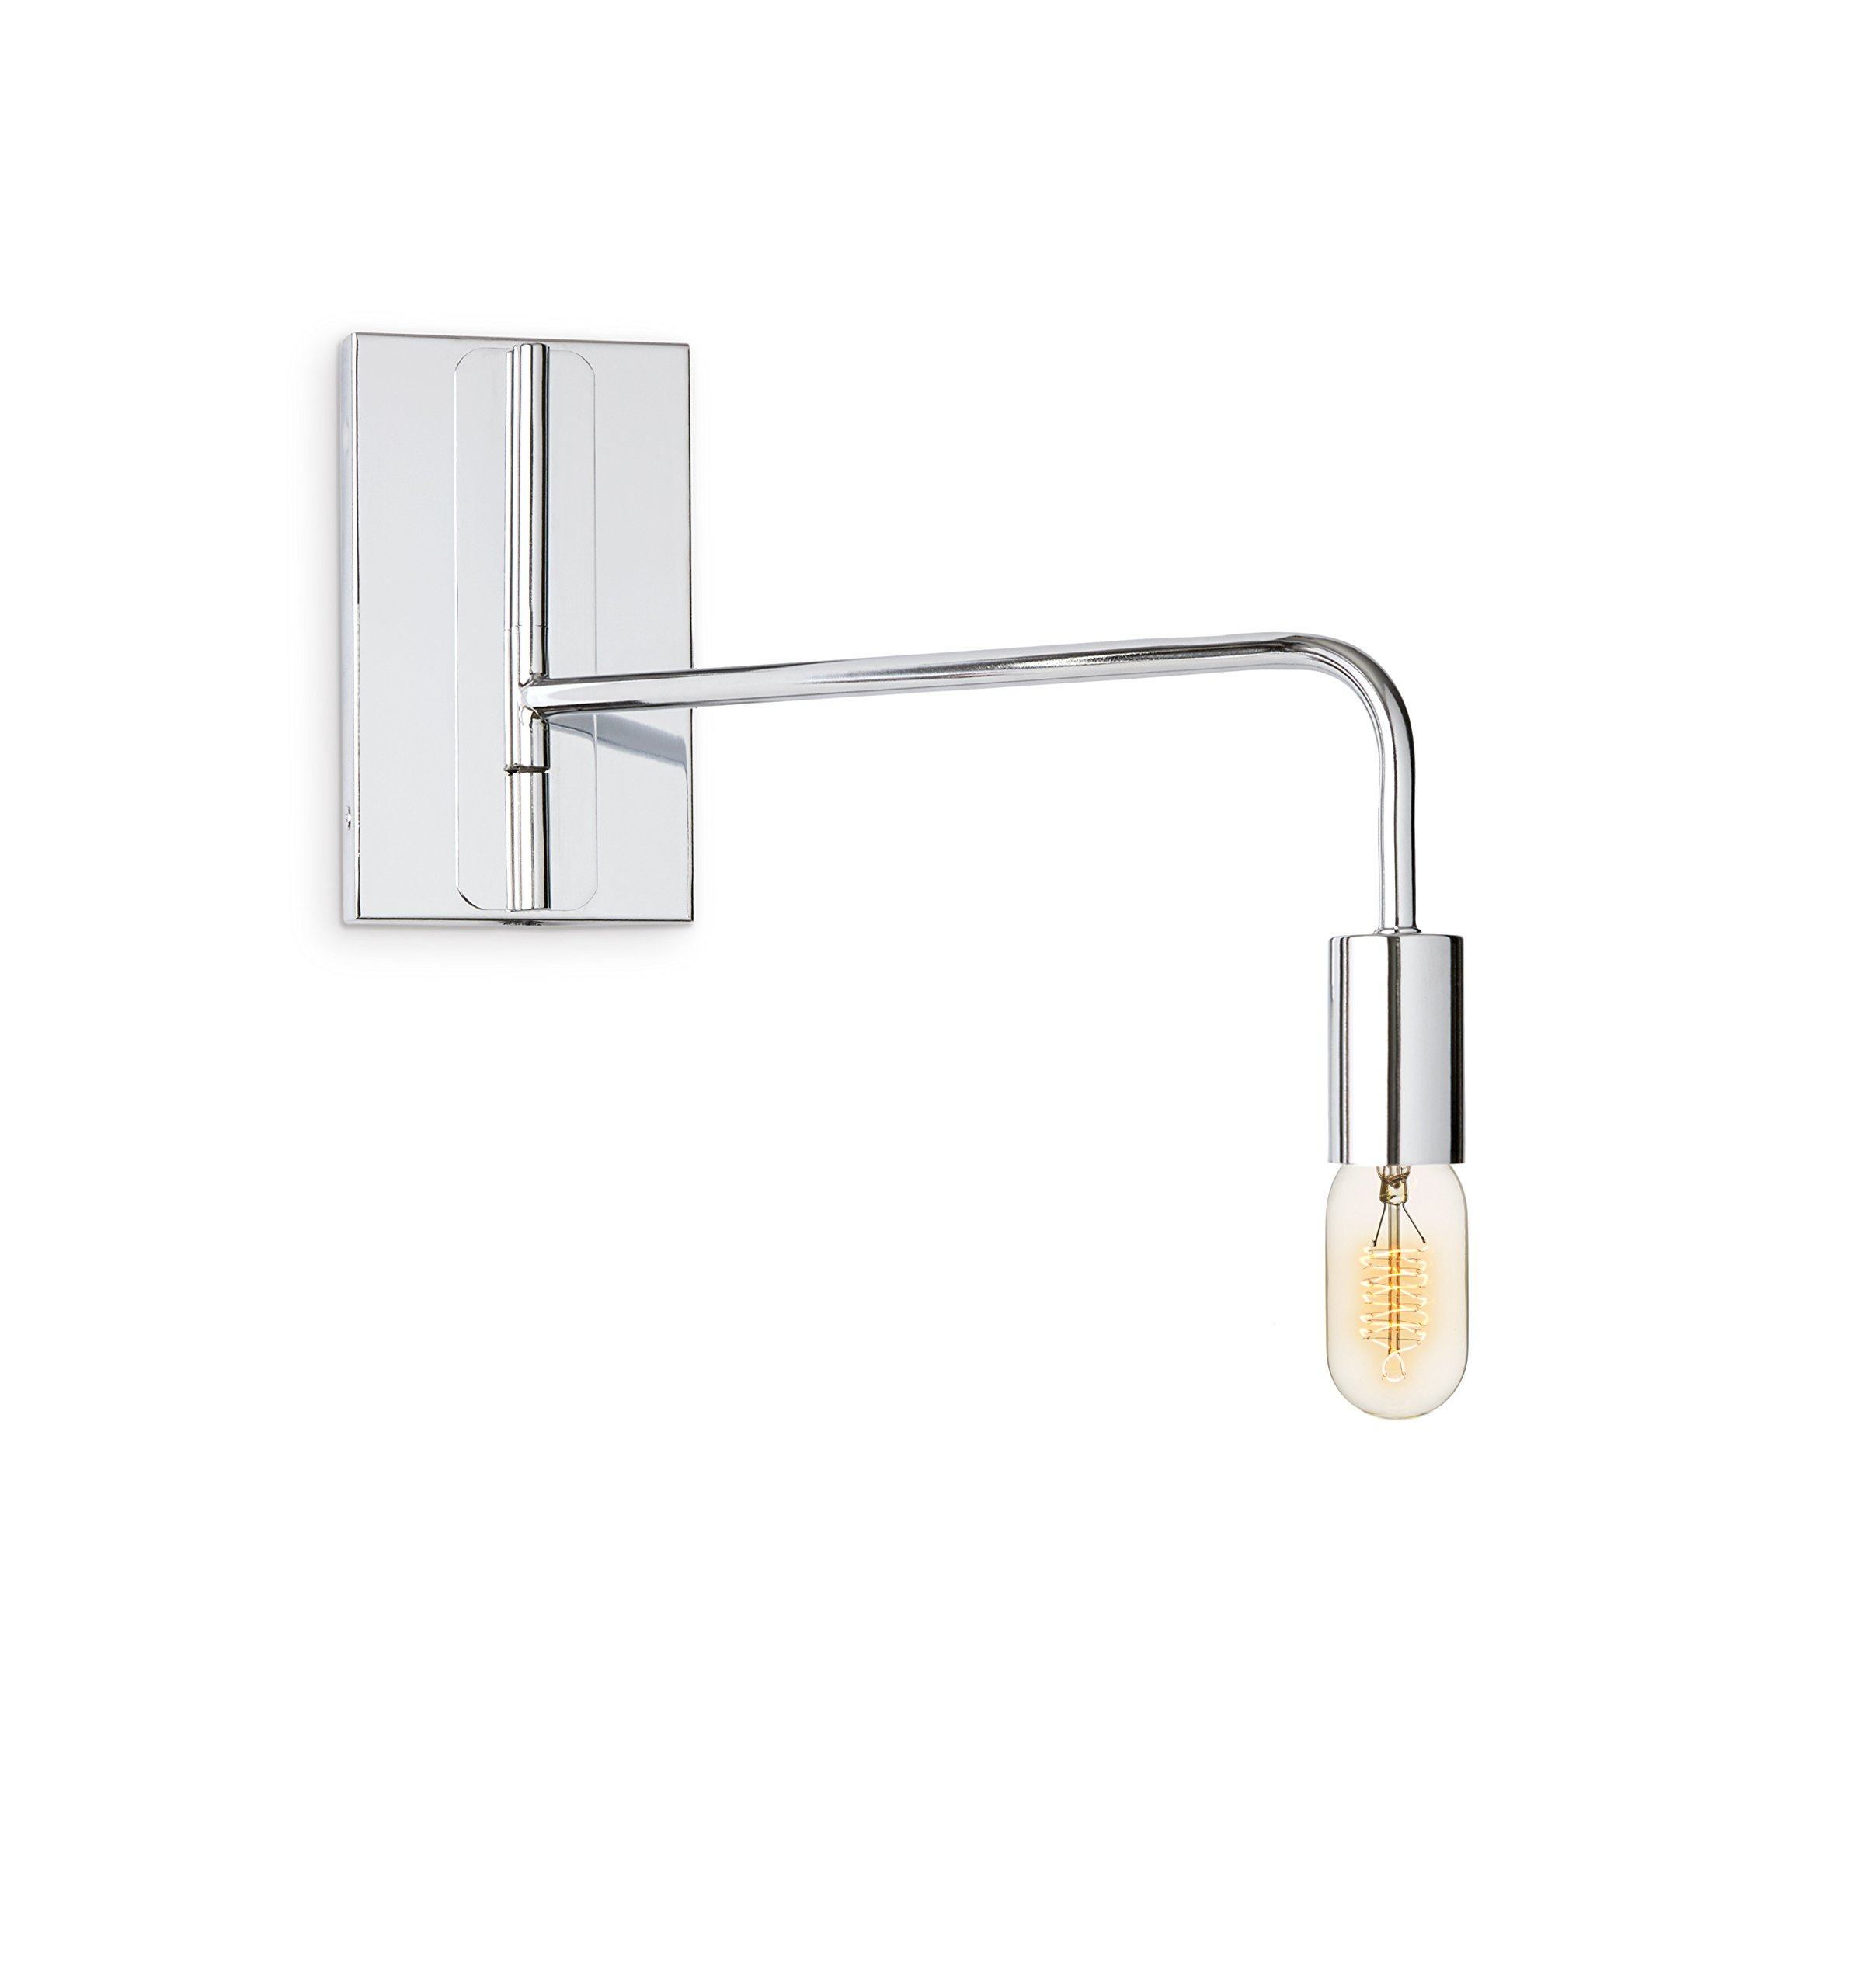 Chrome Wall Sconce Lamp Light - Adjustable Swing Arm, Plugin and Hardwire Installation Options, Edison Bulb Included, Brooklyn Bulb Co. Hoyt Collection - ETL Listed